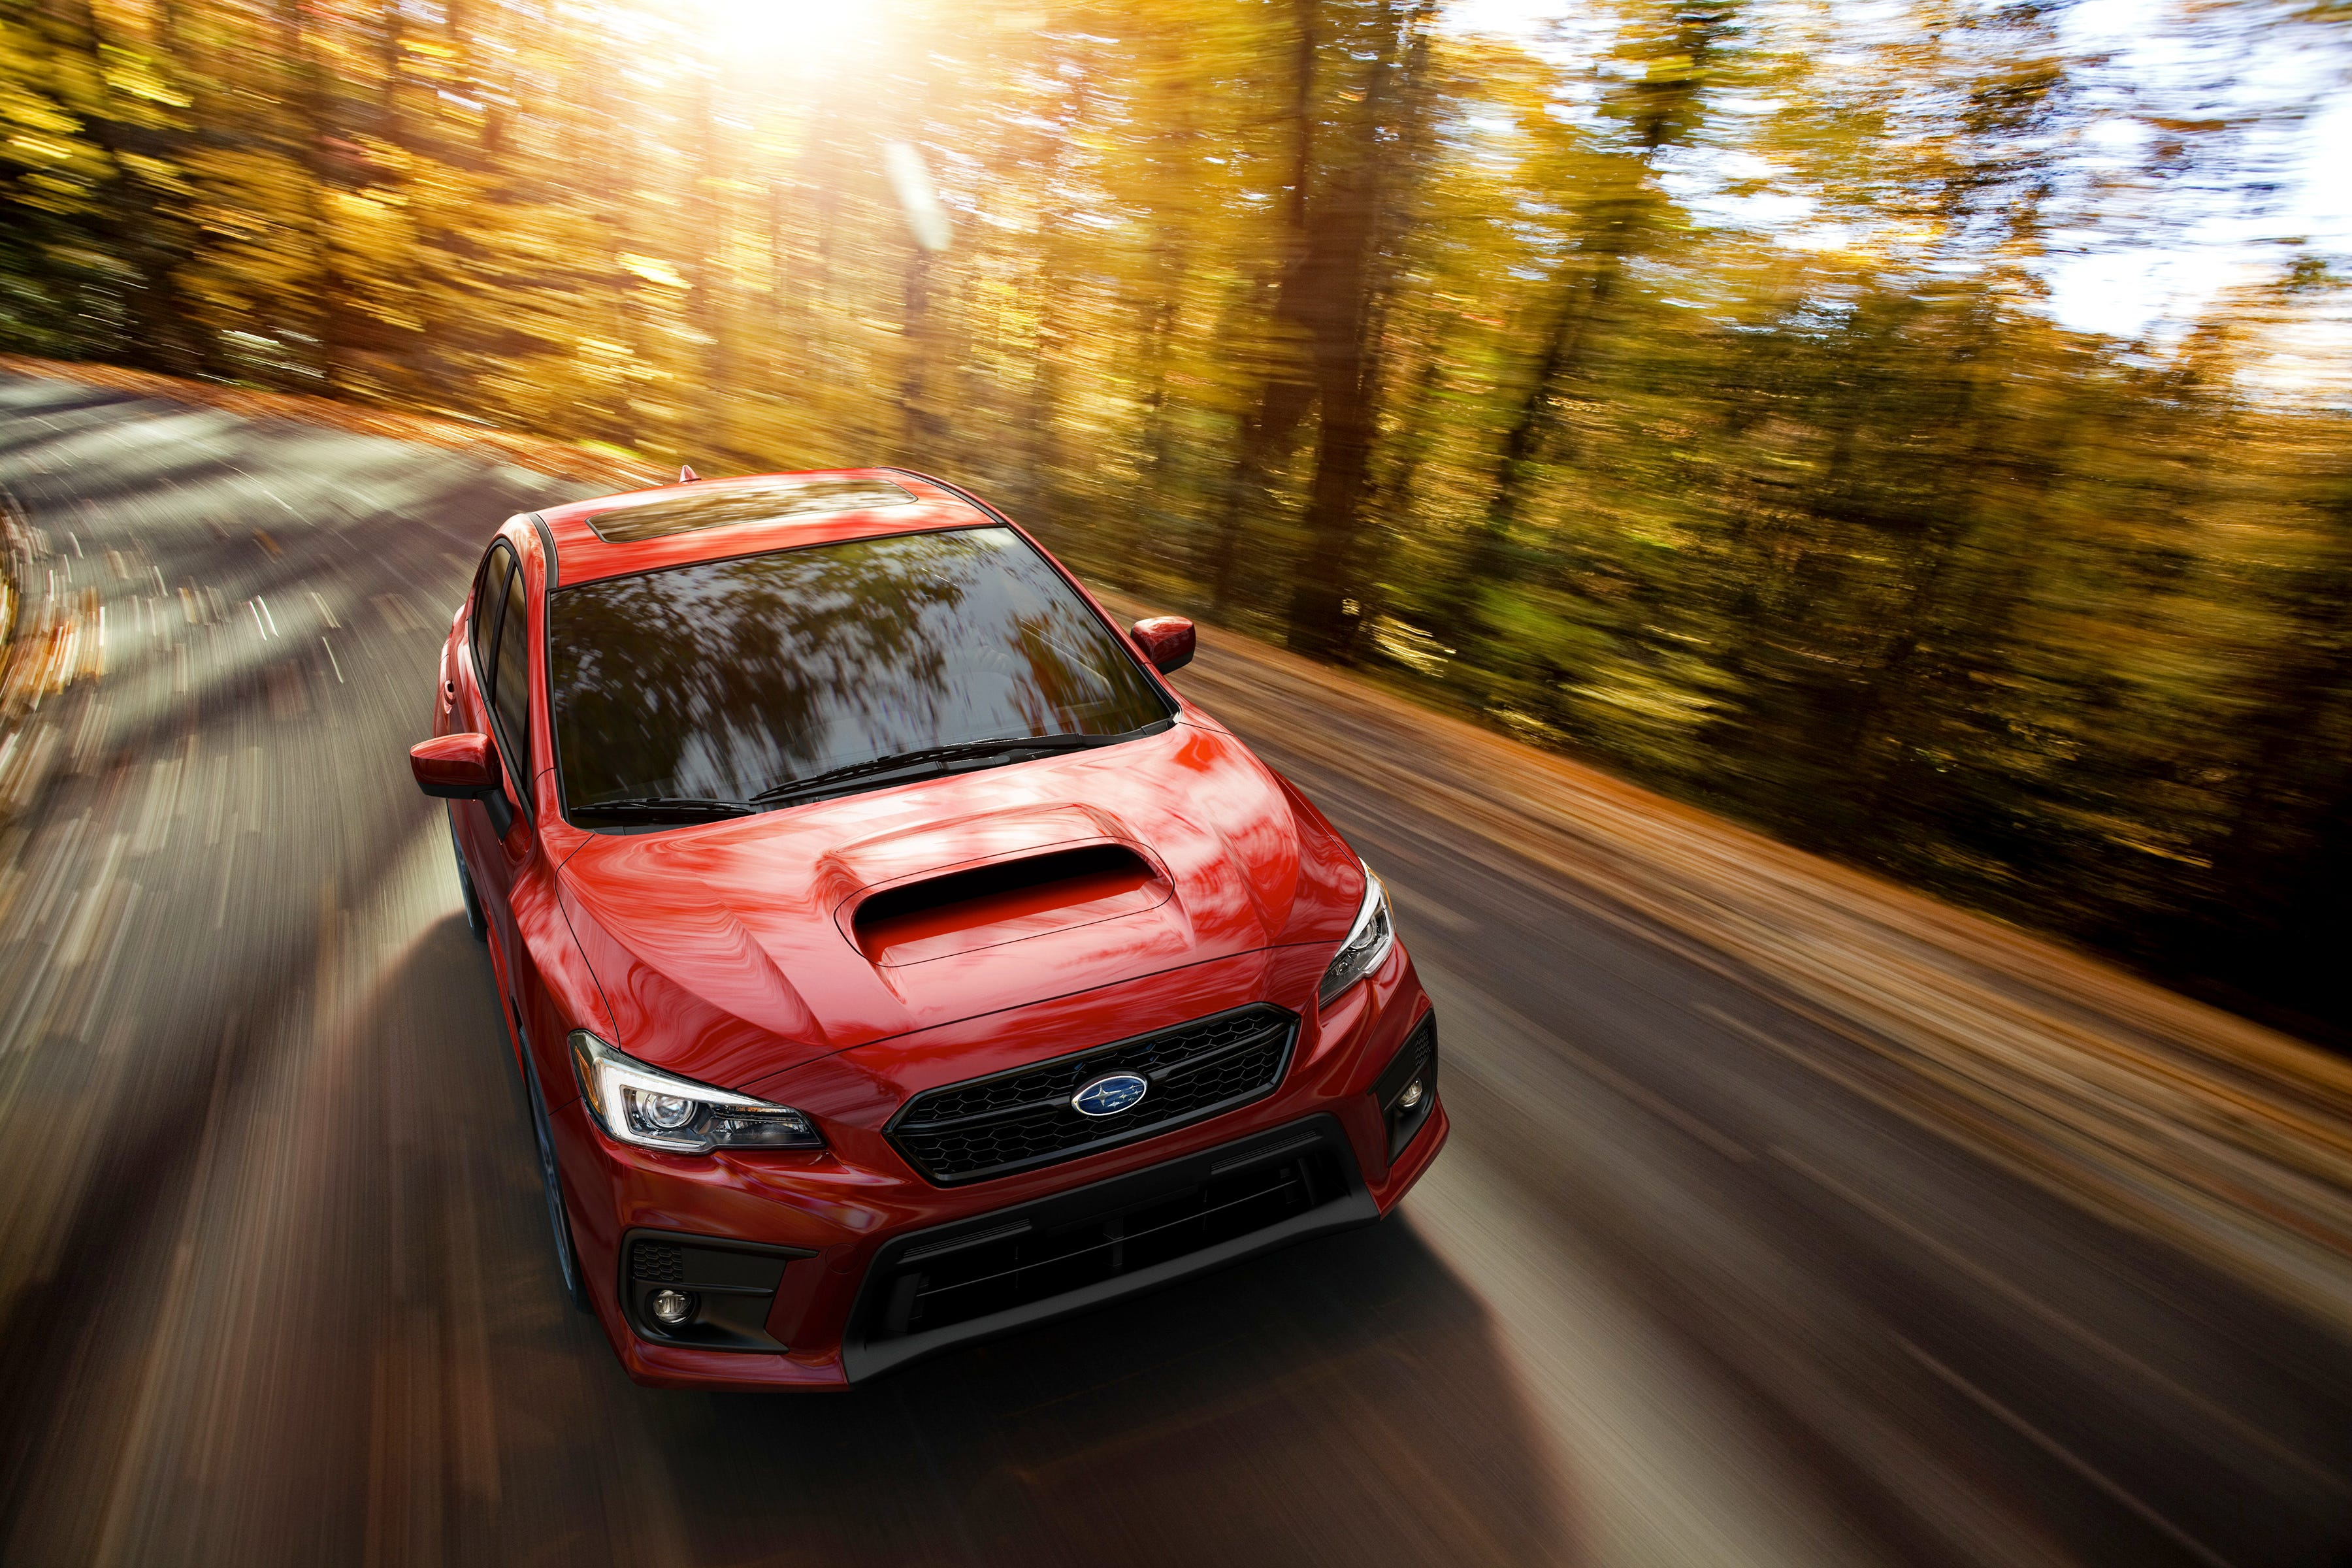 Life in the fast lane: Subaru WRX owners have the most speeding tickets in the last year, Insurify study says.